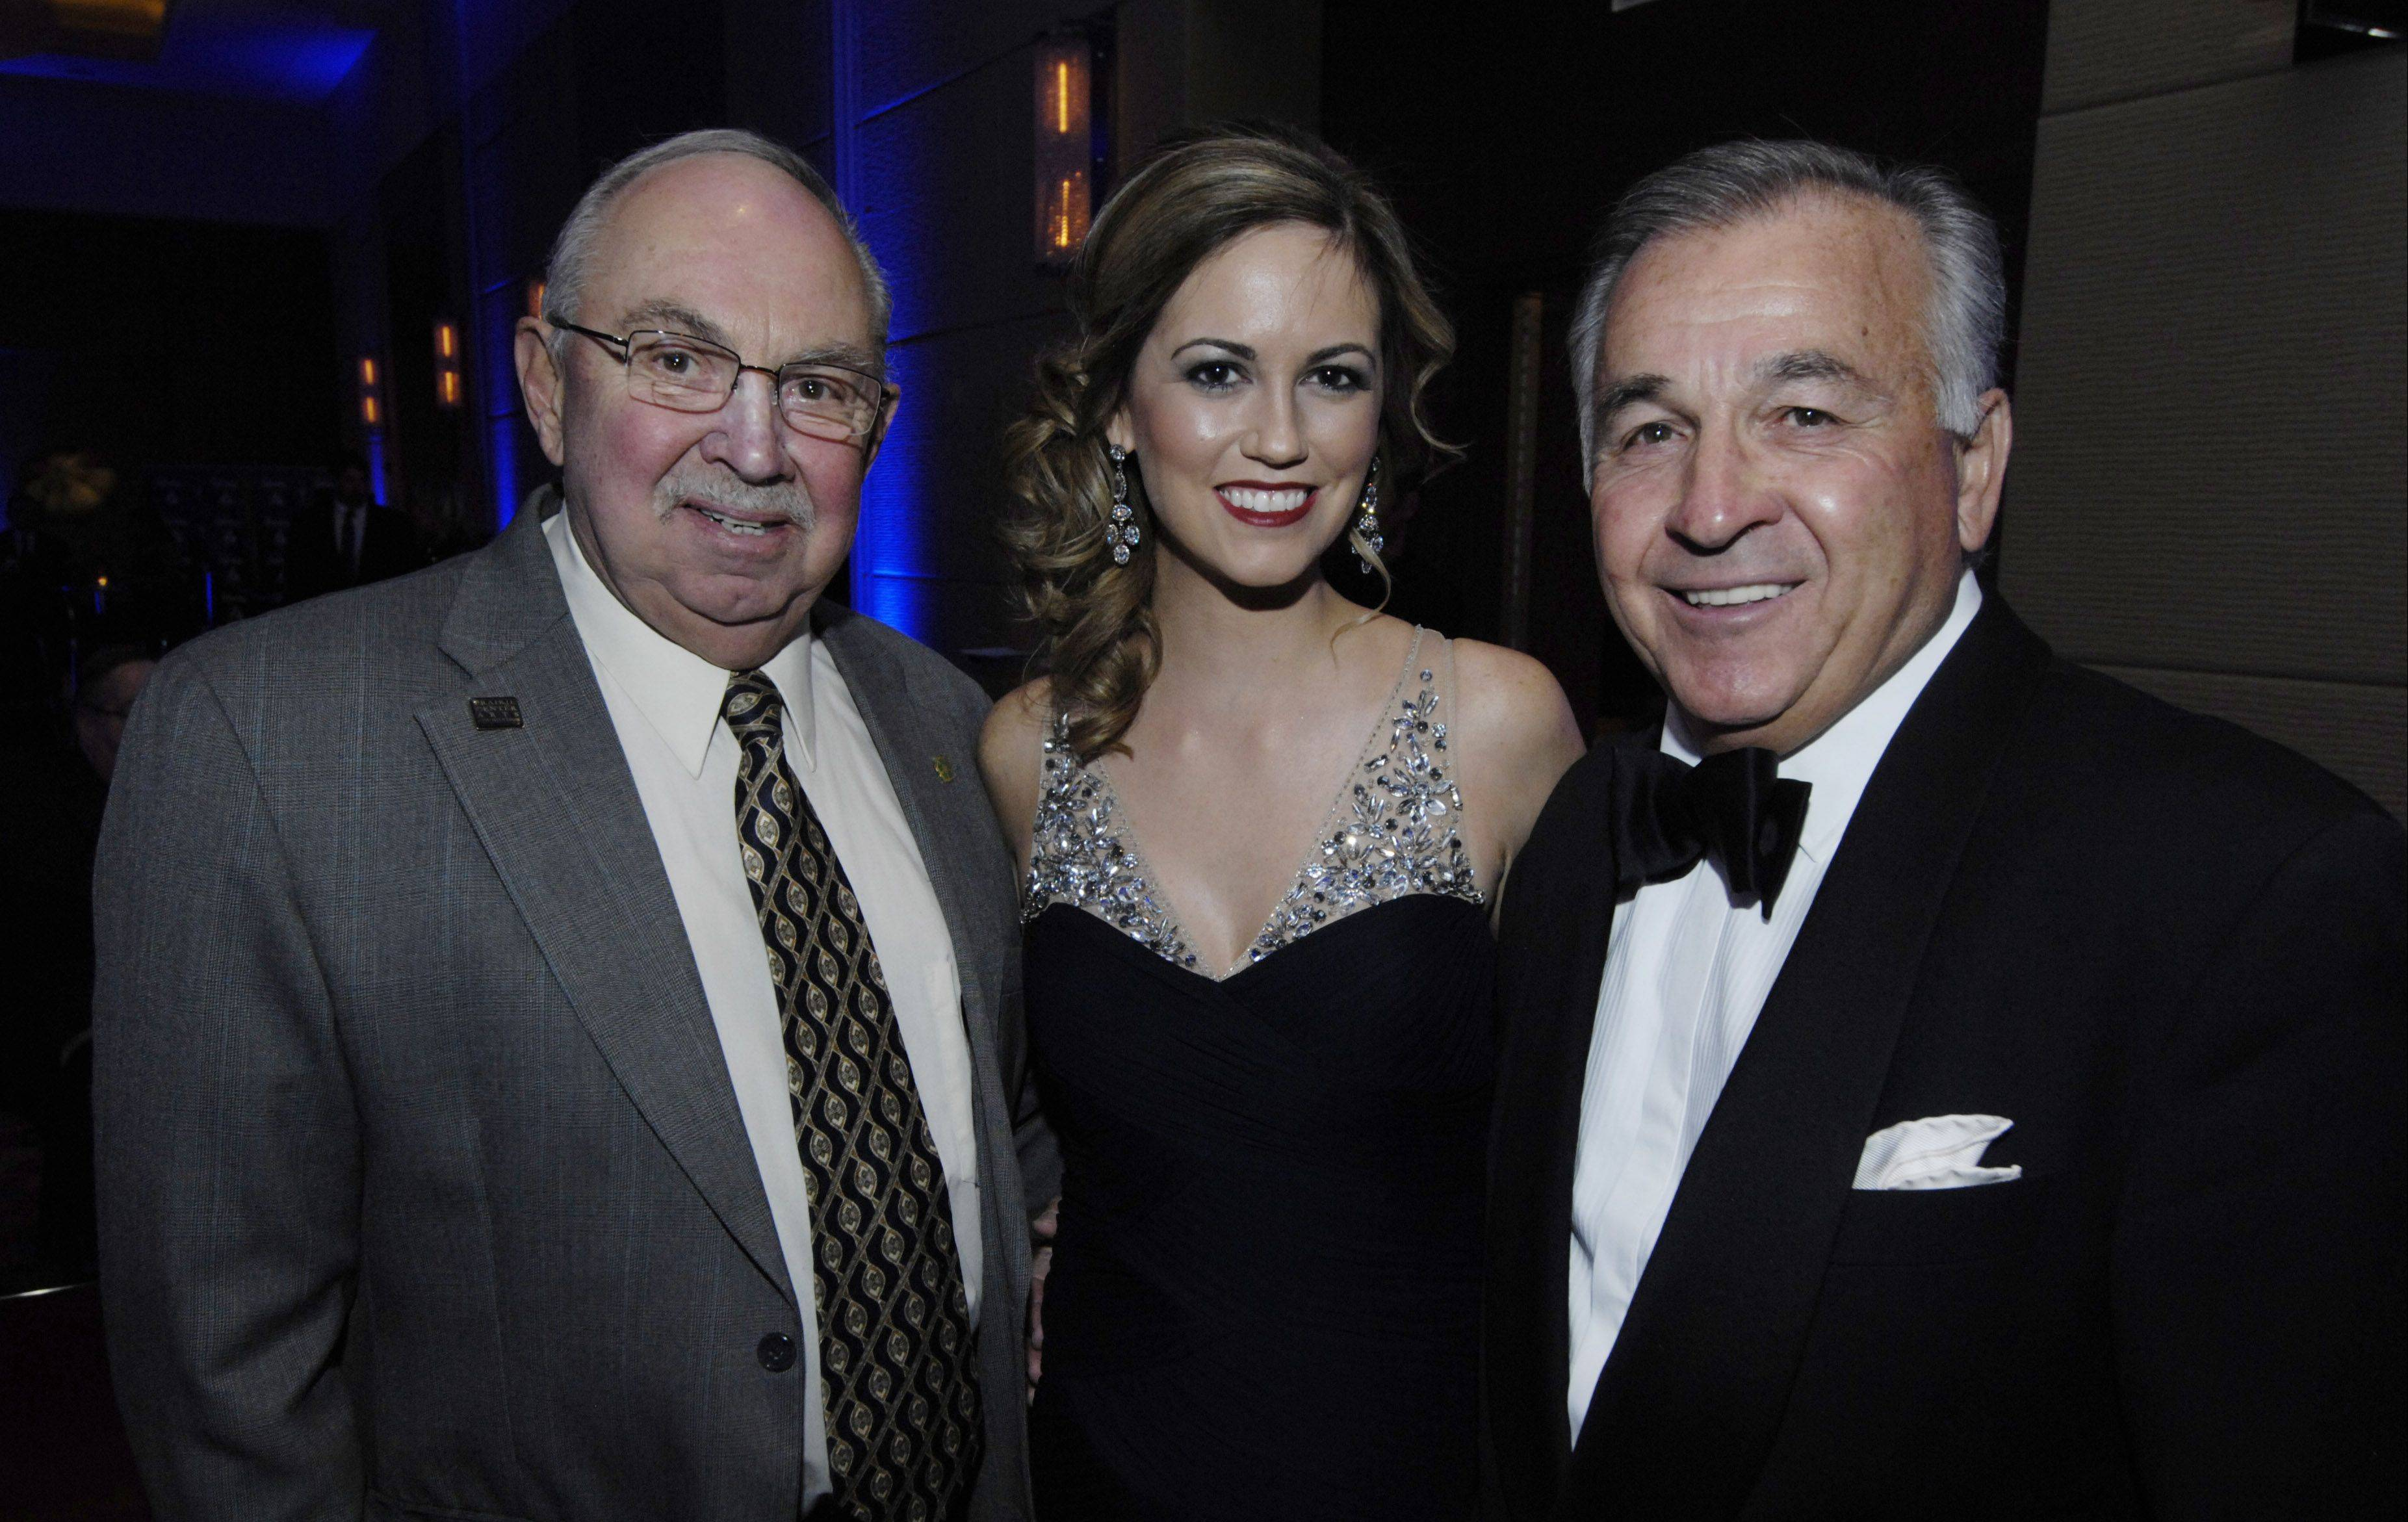 Left to right, Mayor Al Larson, Schaumburg Business Association President Kaili Harding and SBA Chairman of the Board Rich Augustine are shown during the SBA gala and awards Saturday at the Renaissance Convention Center Hotel.